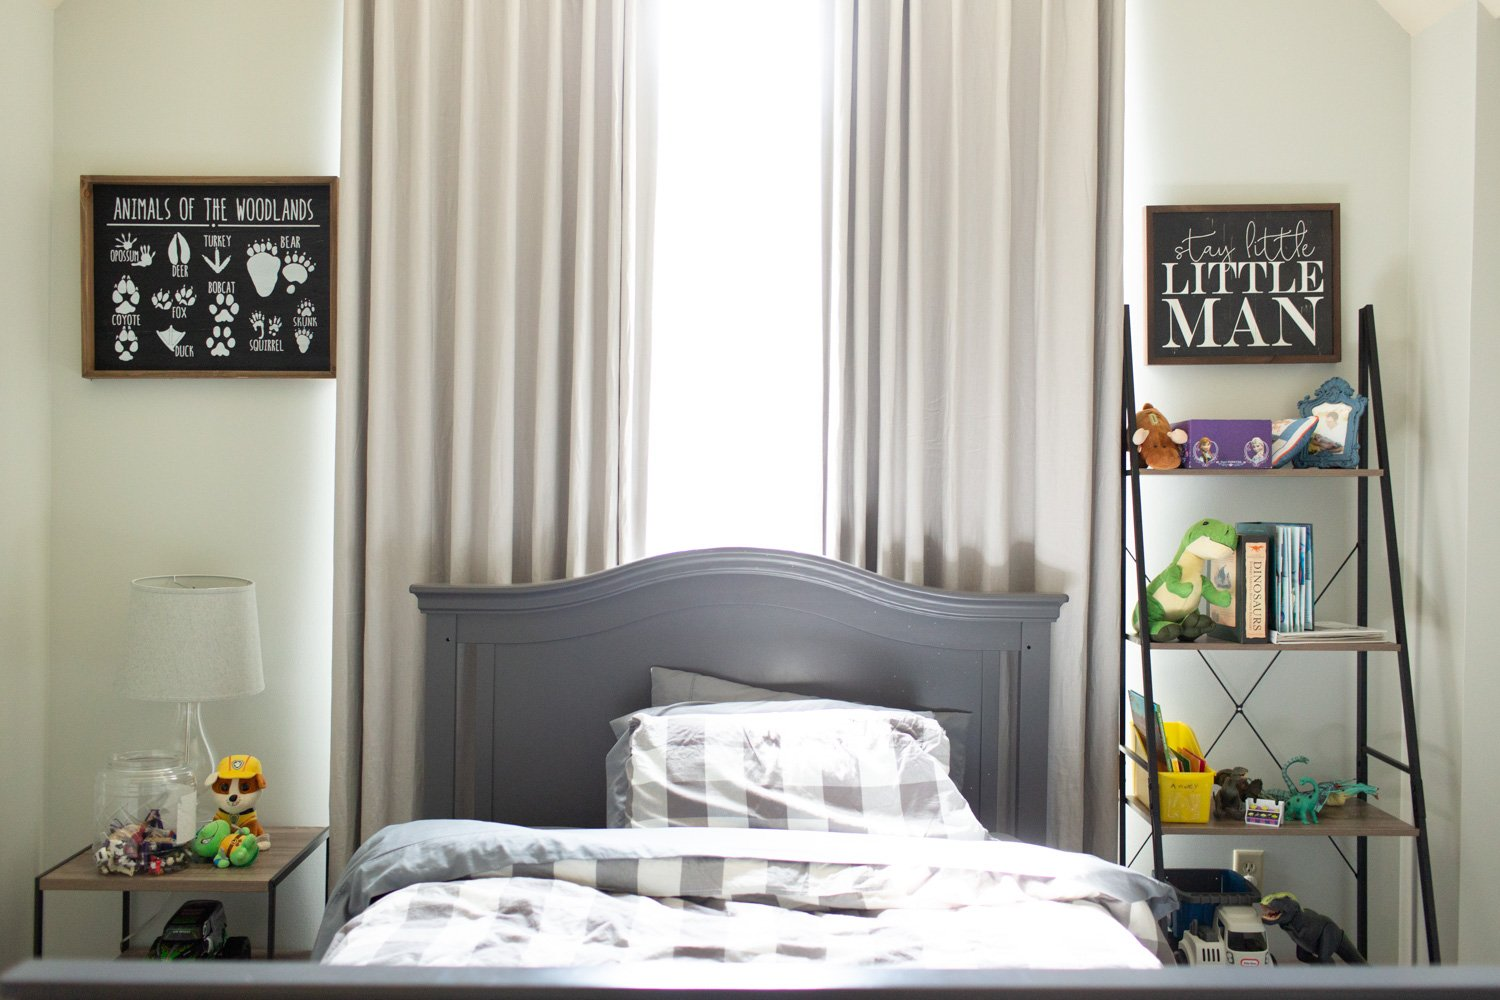 Benjamin Moore Gray Owl Paint Color - Verdict: Not a Neutral Gray